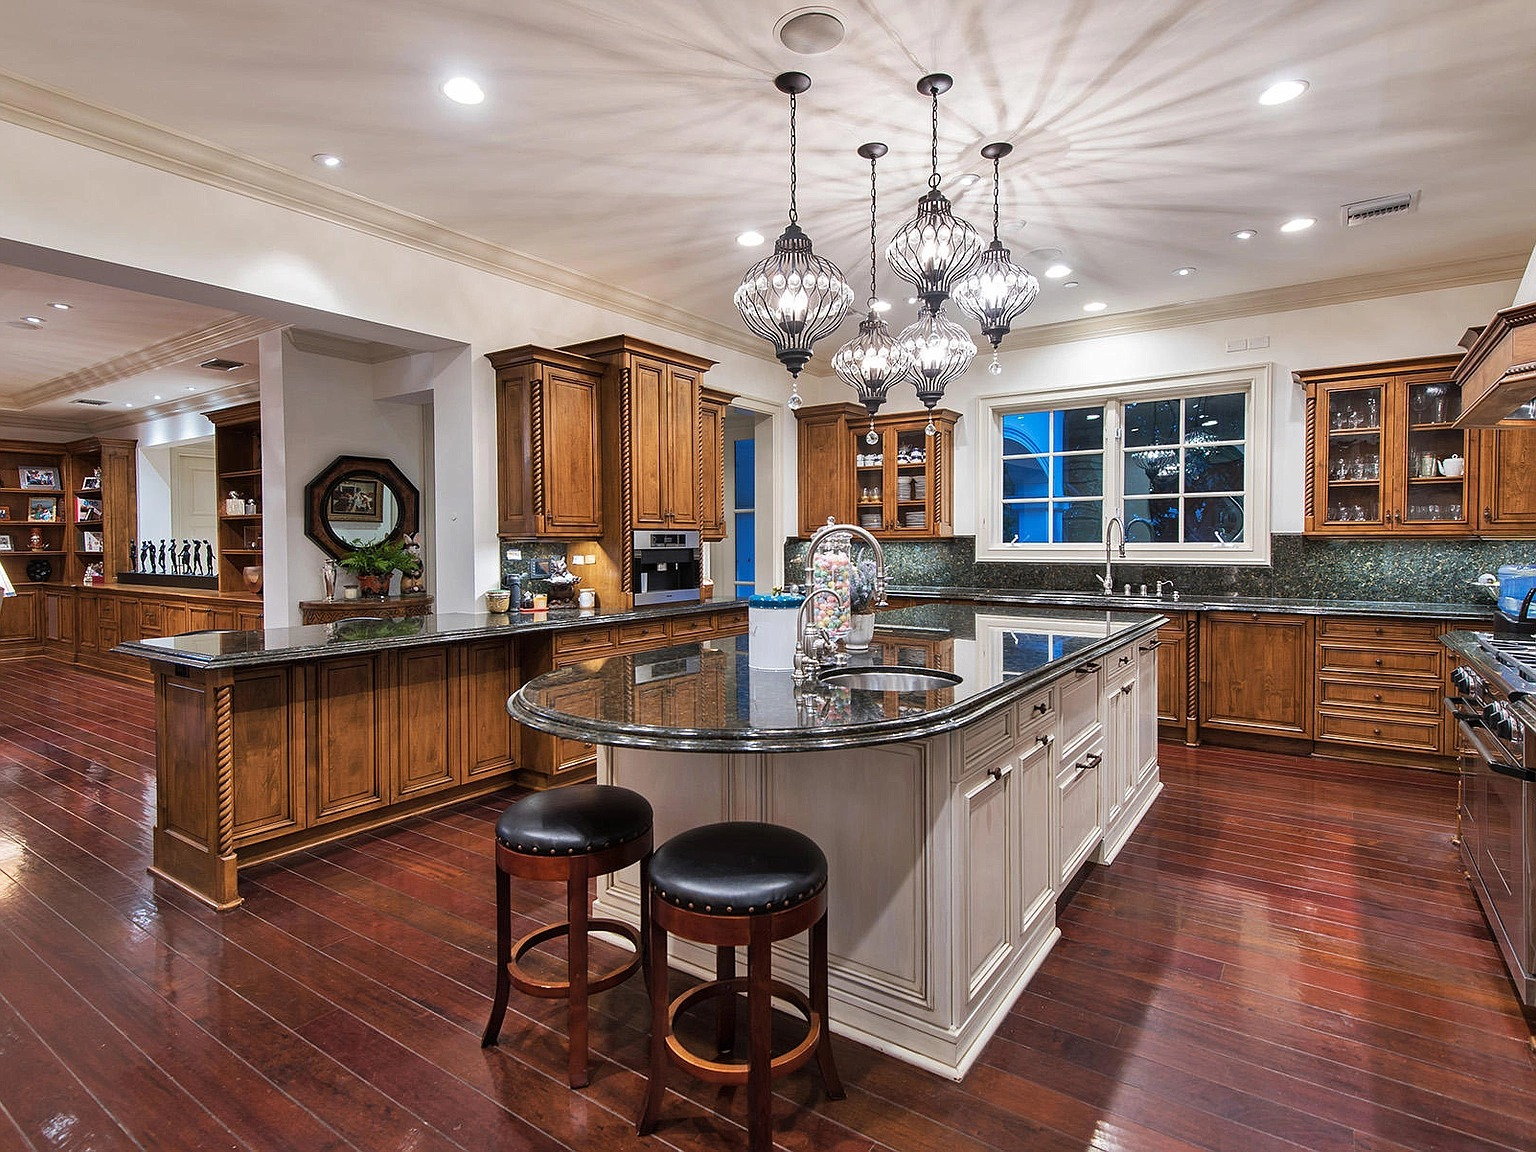 2658 Ladbrook Way, Thousand Oaks, CA 91361 - $7,995,000 home for sale, house images, photos and pics gallery